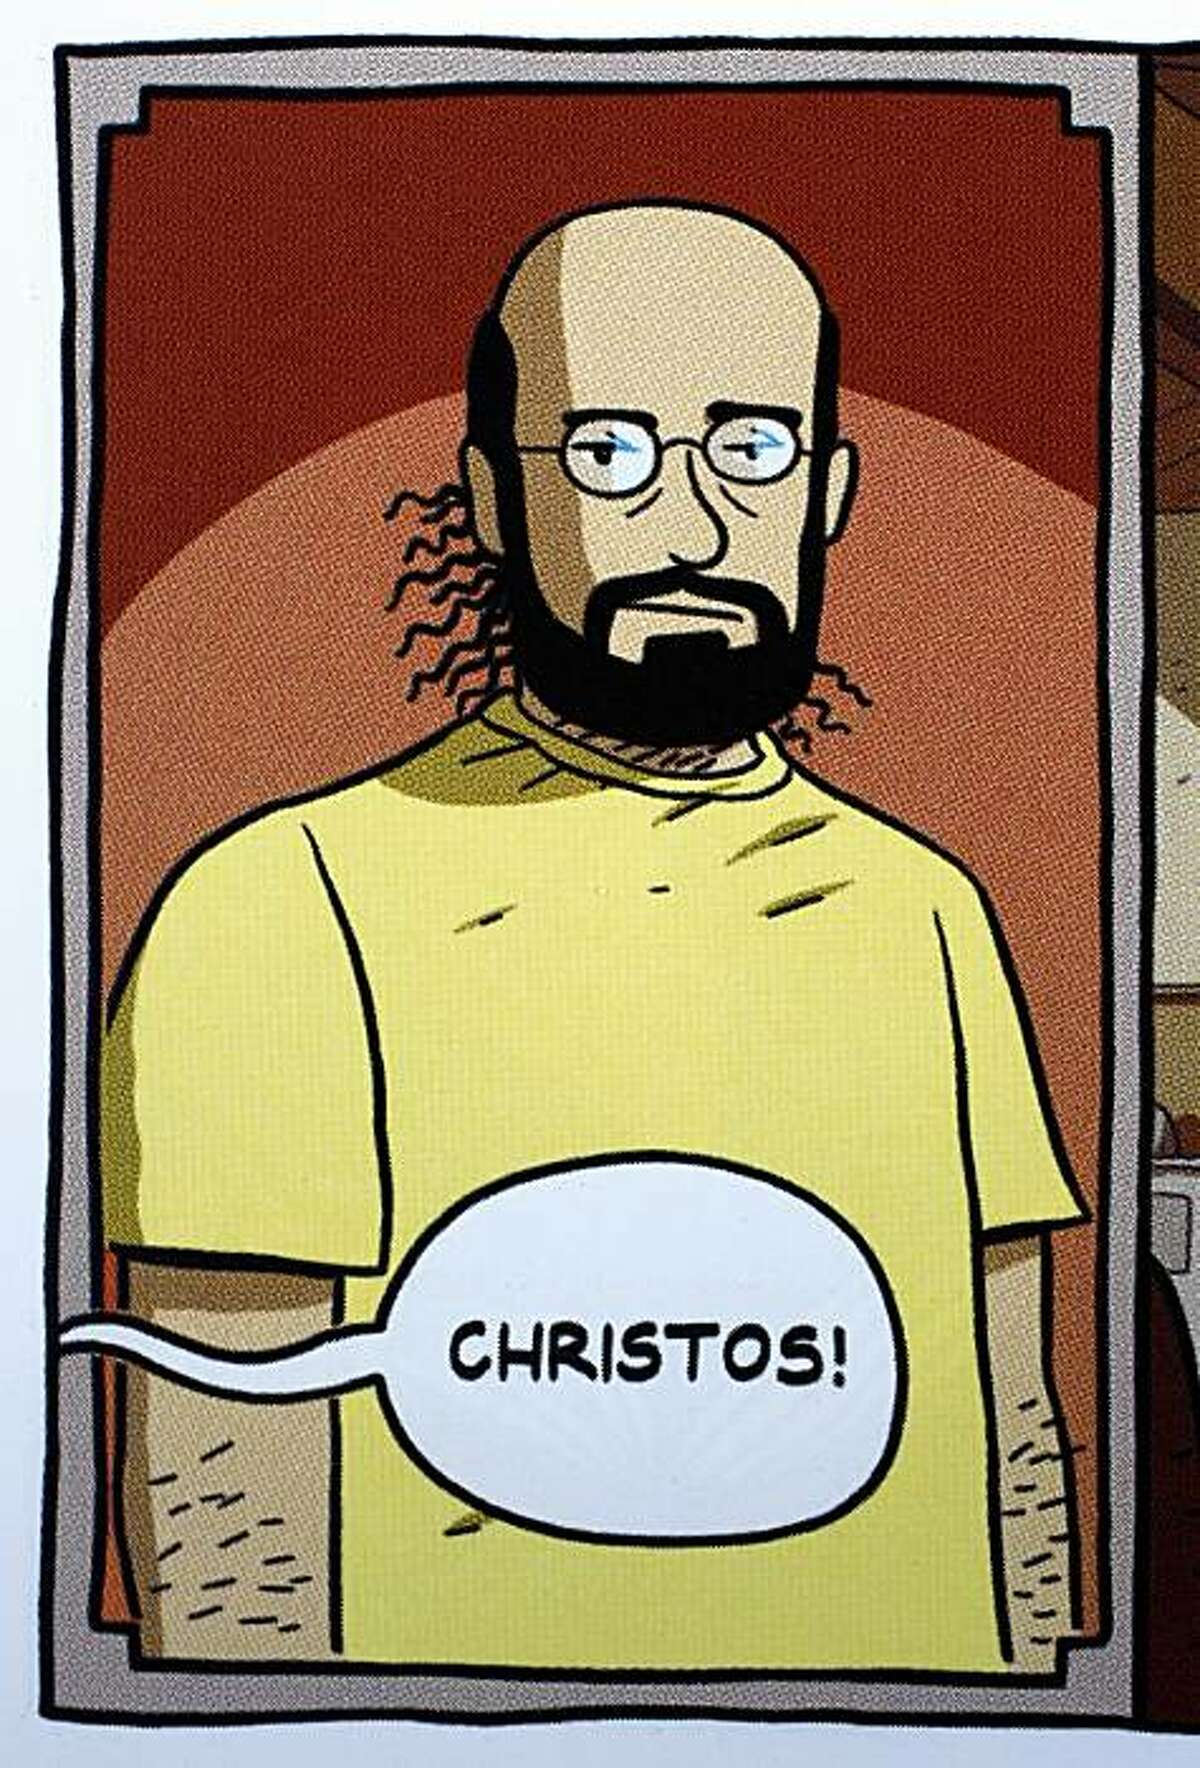 """Computer Science professor Christos Papadimitriou appears as a character in a graphic novel he co-authored titled, """"Logicomix""""."""